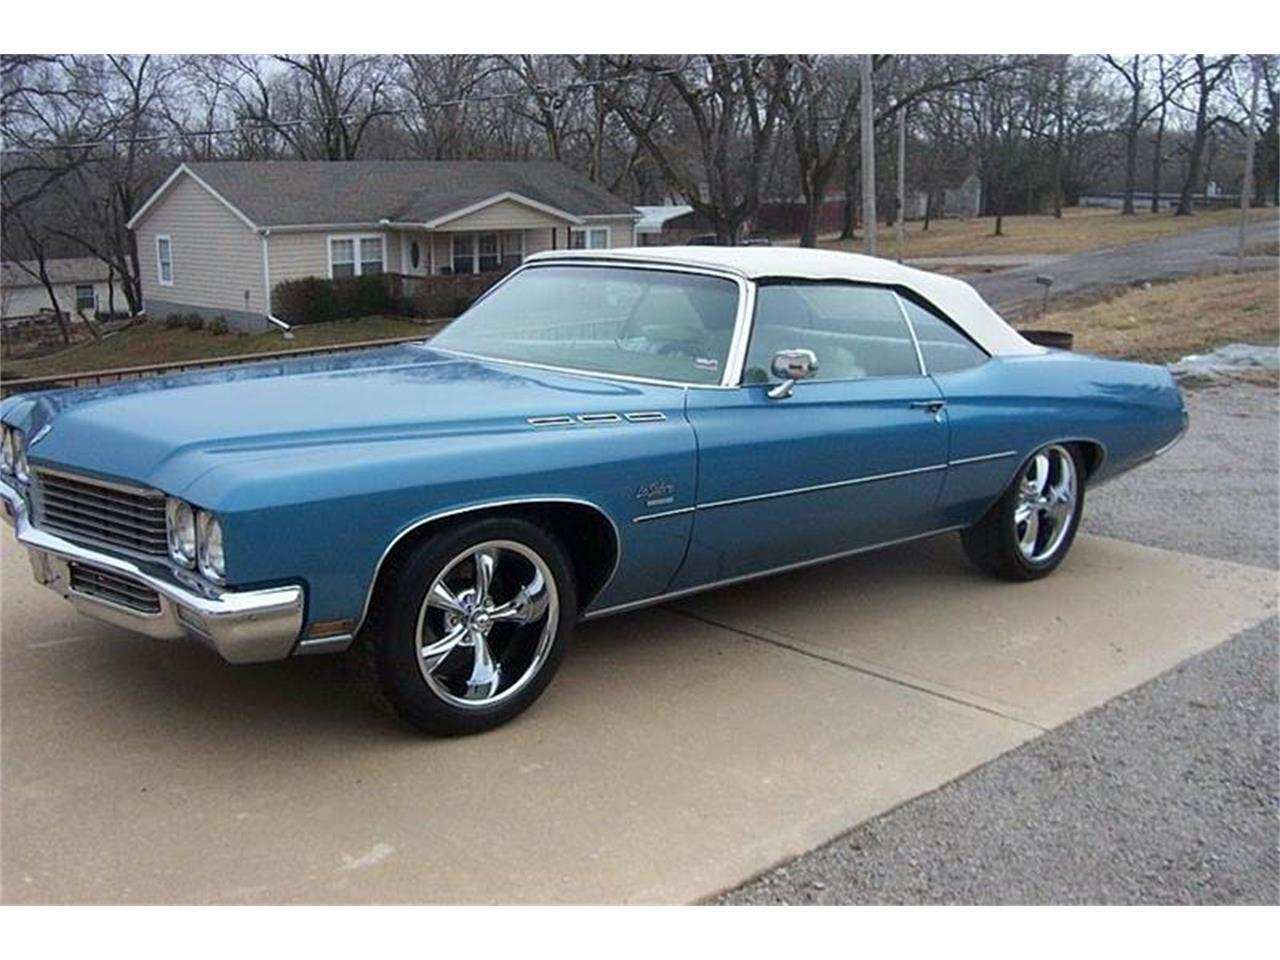 76 All New Buick Lesabre Picture New Concept for Buick Lesabre Picture